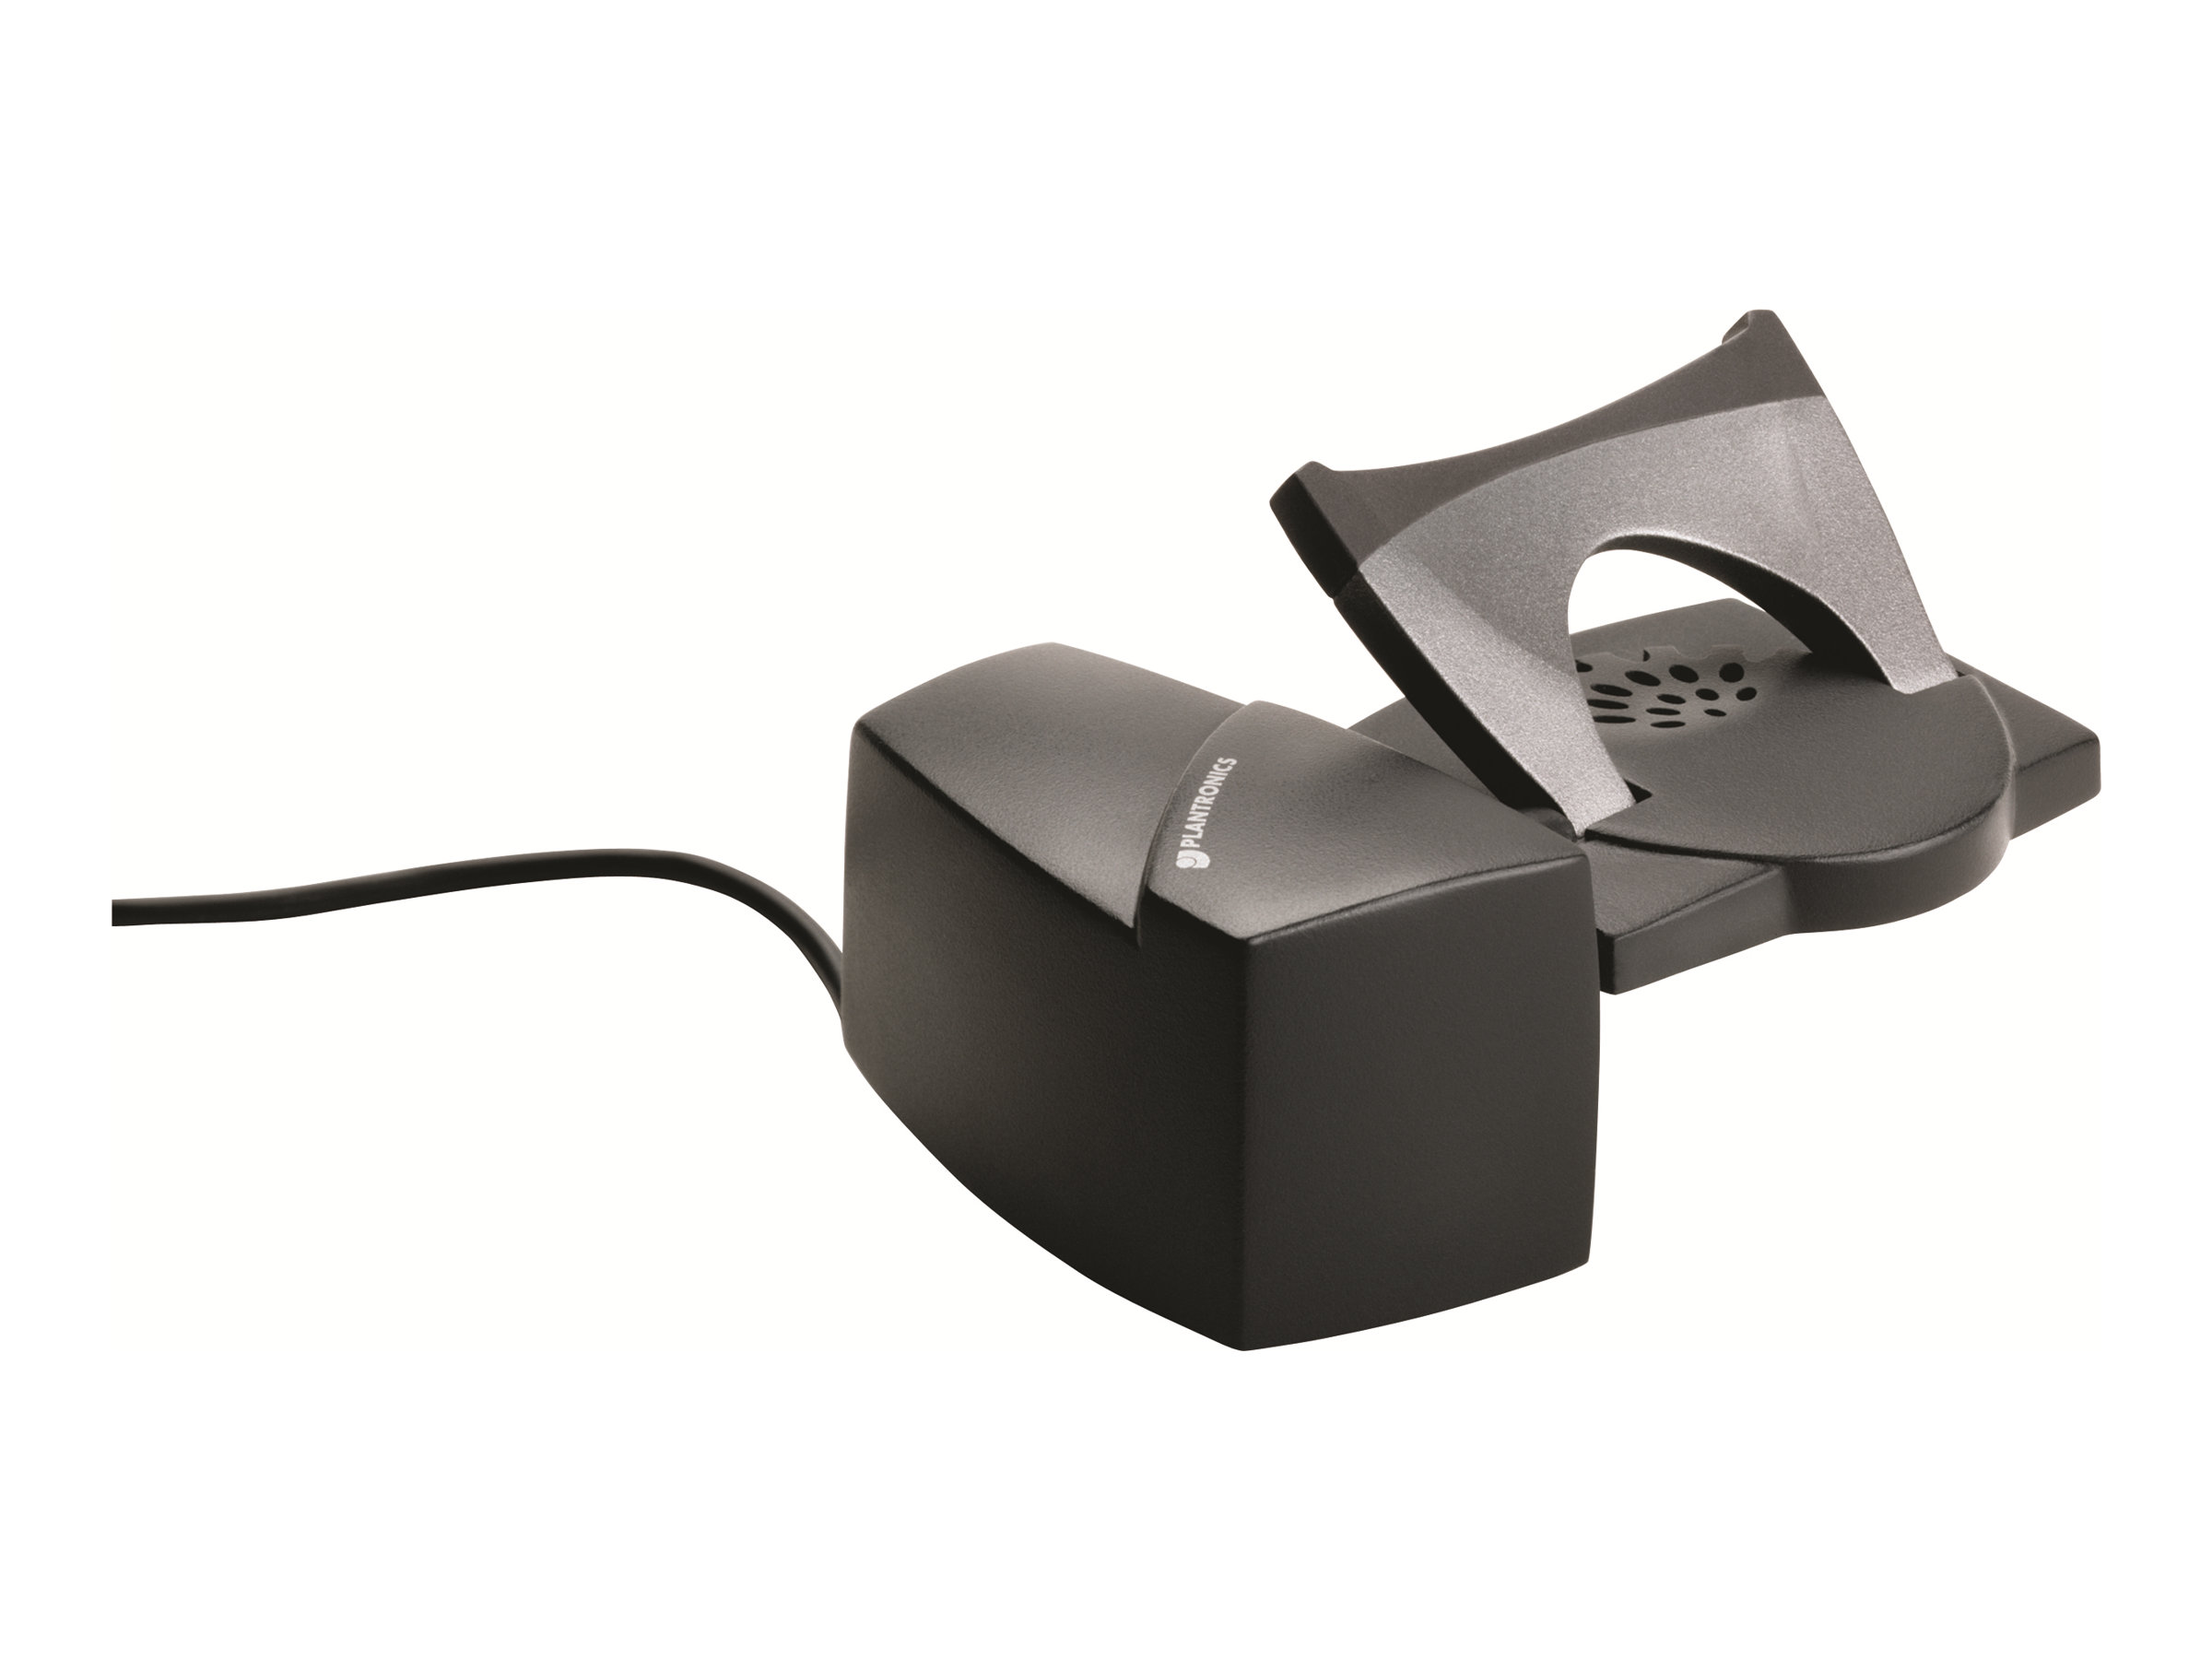 Poly HL 10 - handset lifter for wireless headset, phone